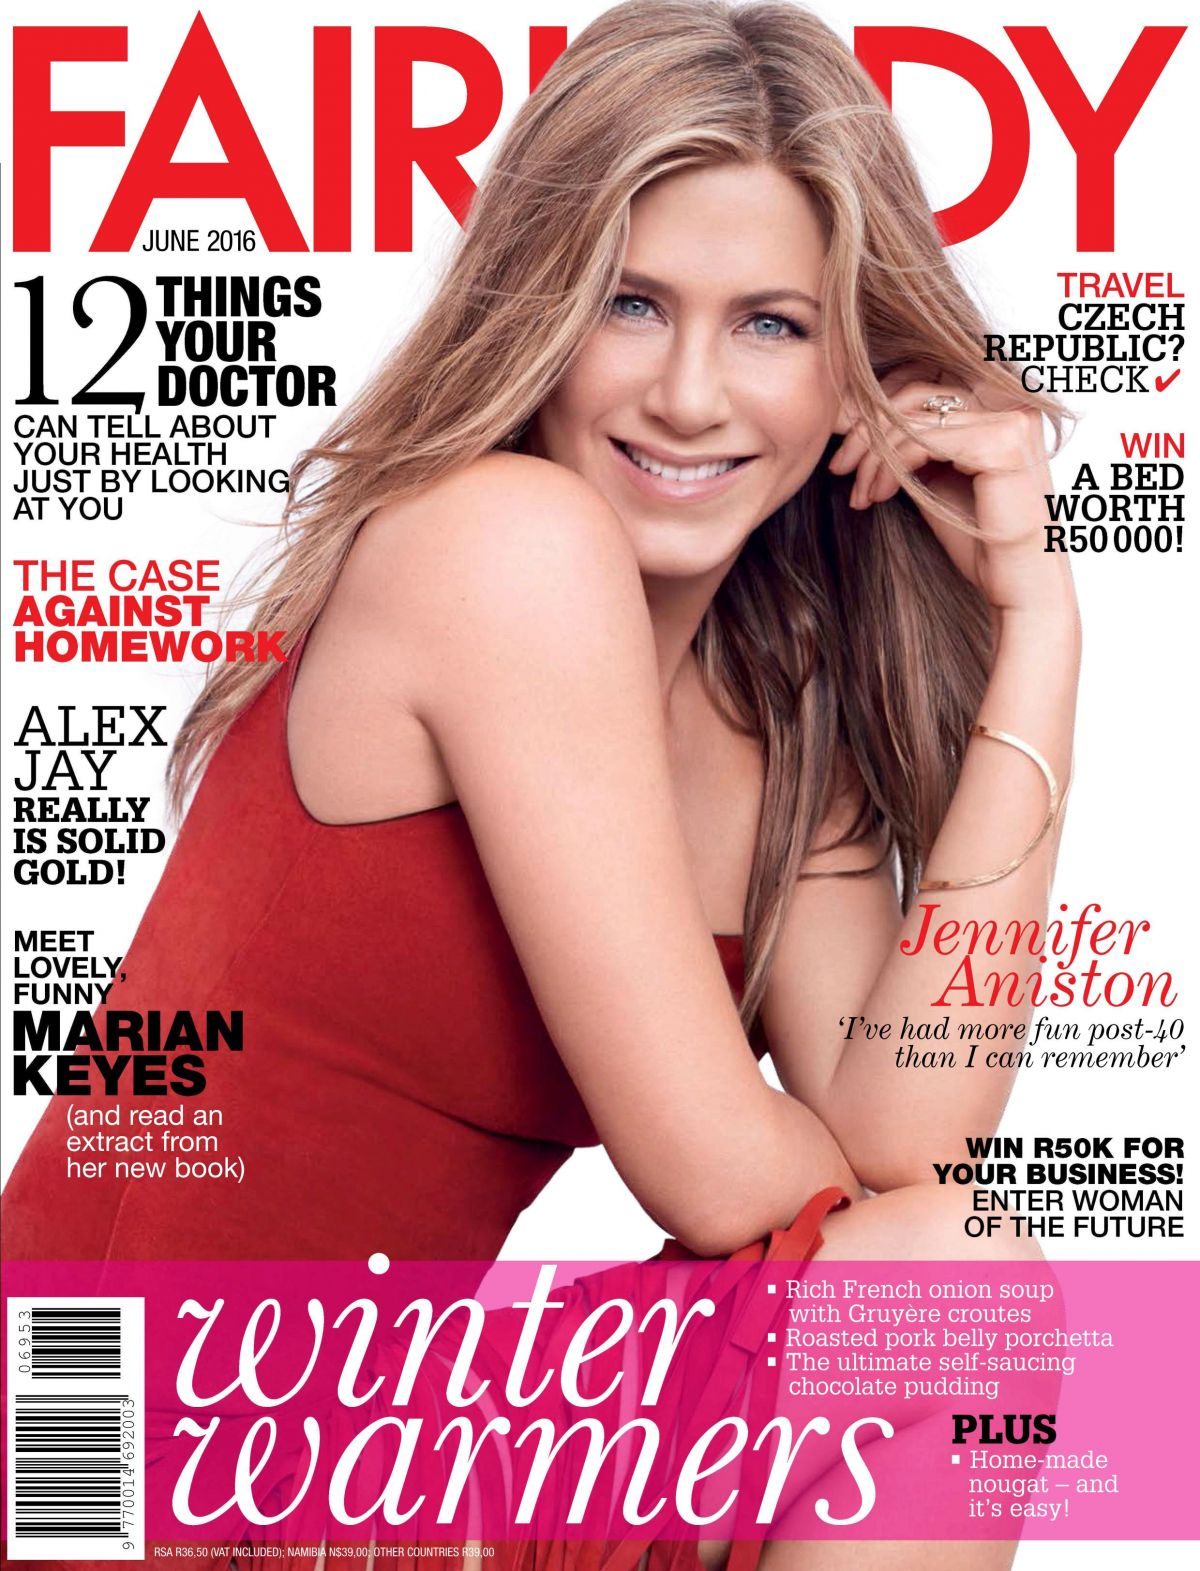 JENNIFER ANISTON in Fairlady Magazine, June 2016 Issue